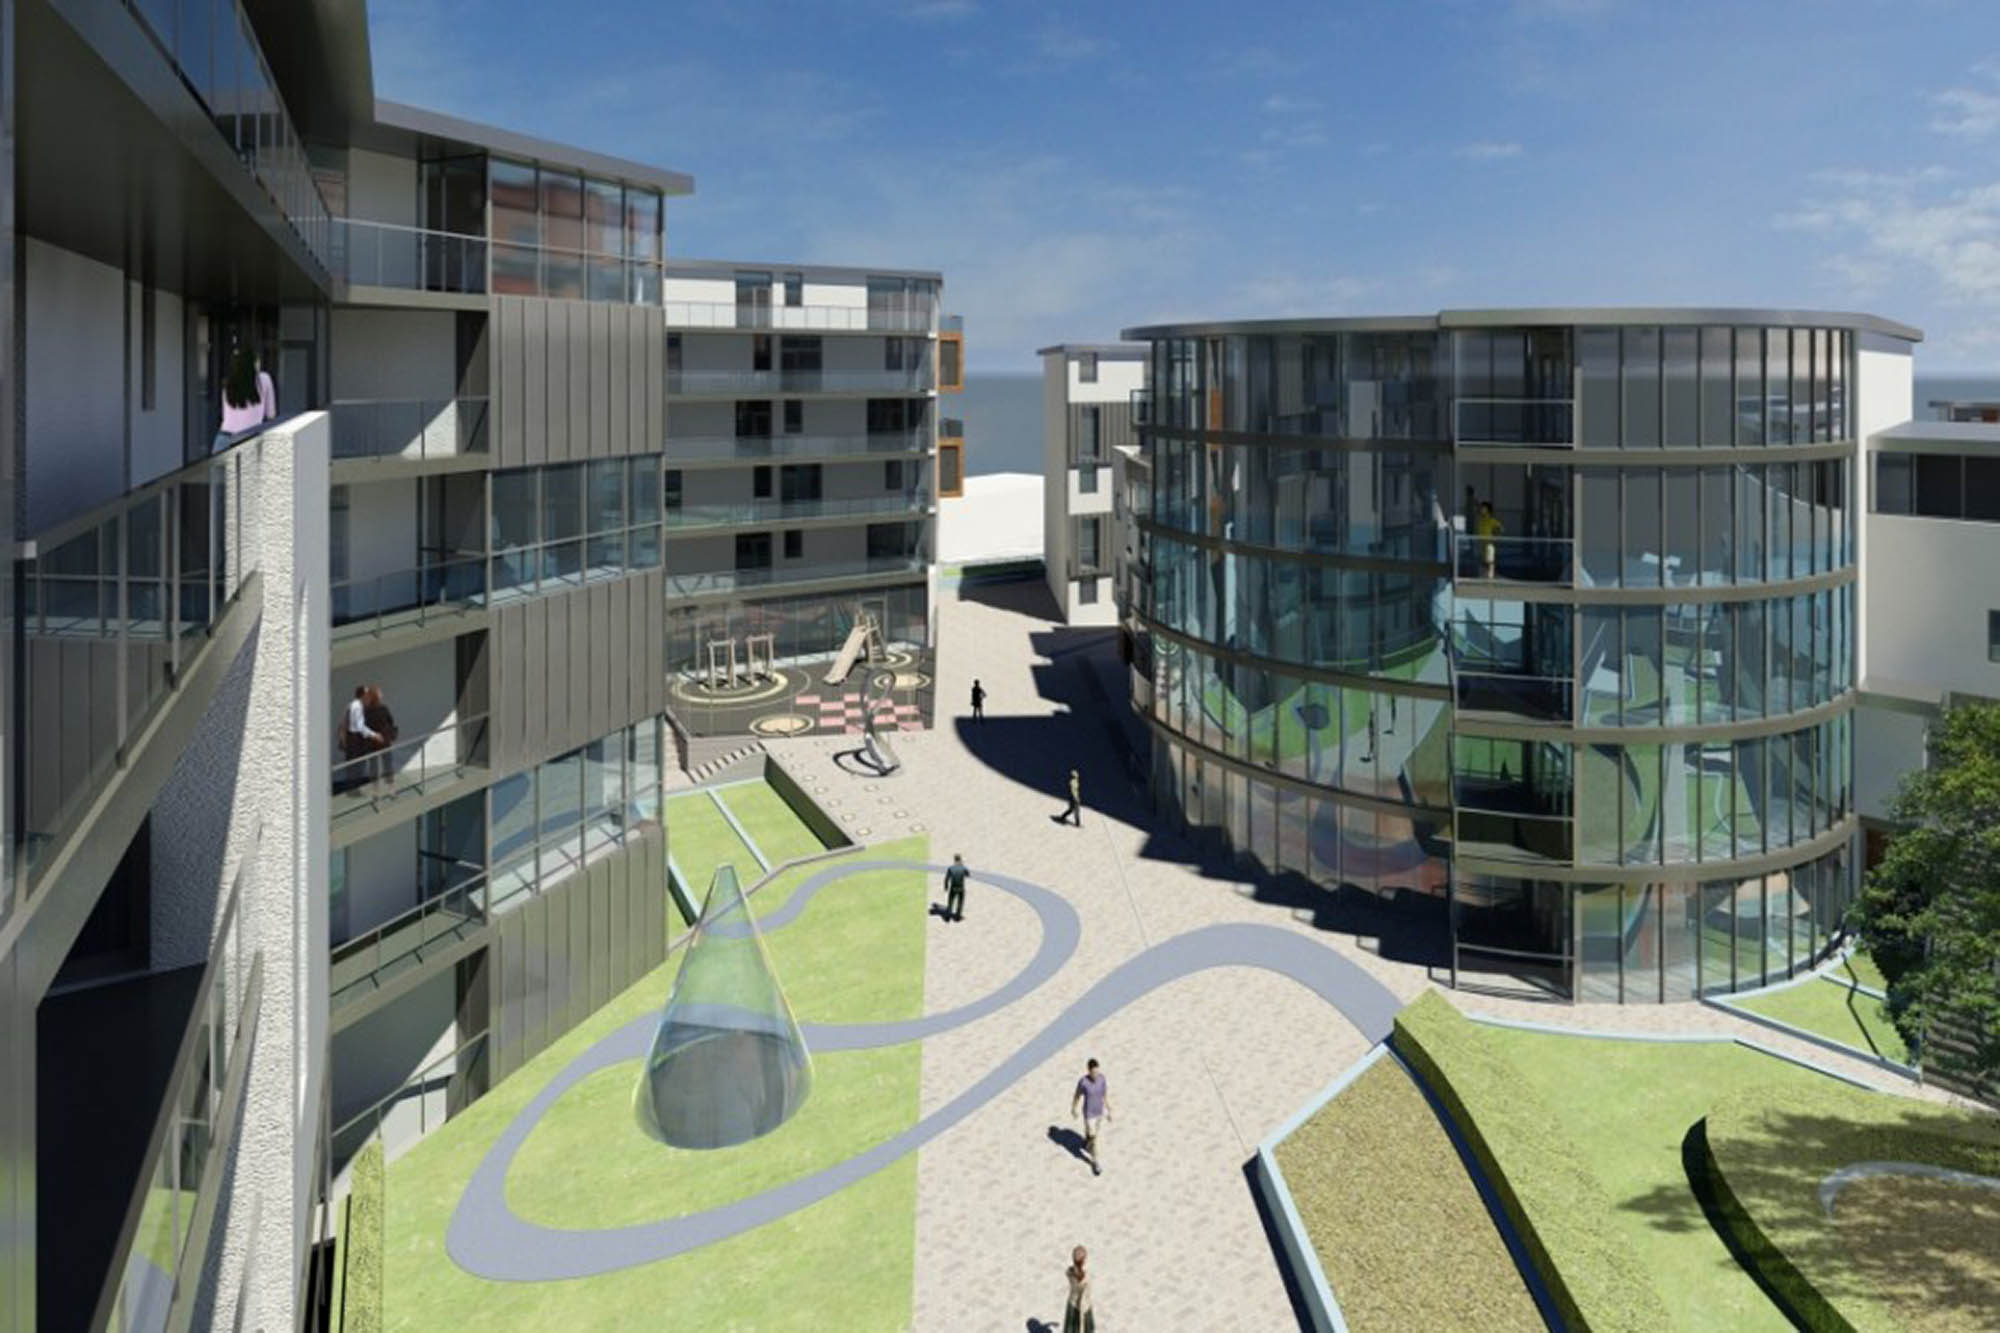 Architect's impression of River Liffey inspired courtyard area for Dublin Apartment blocks